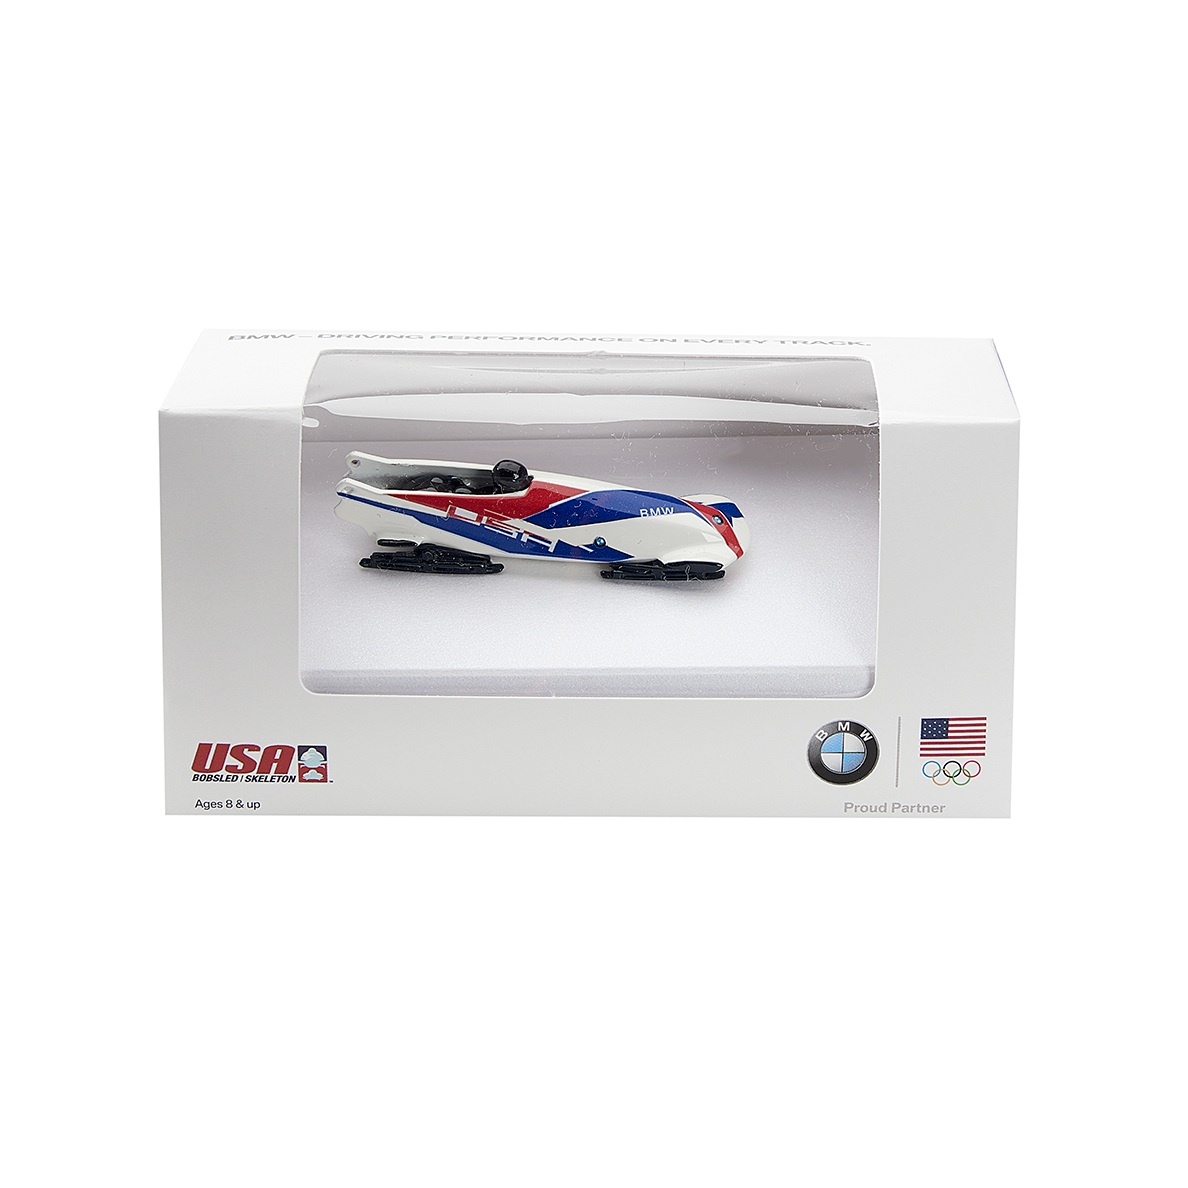 Model Bobsled Gifts in Custom Packaging for BMW